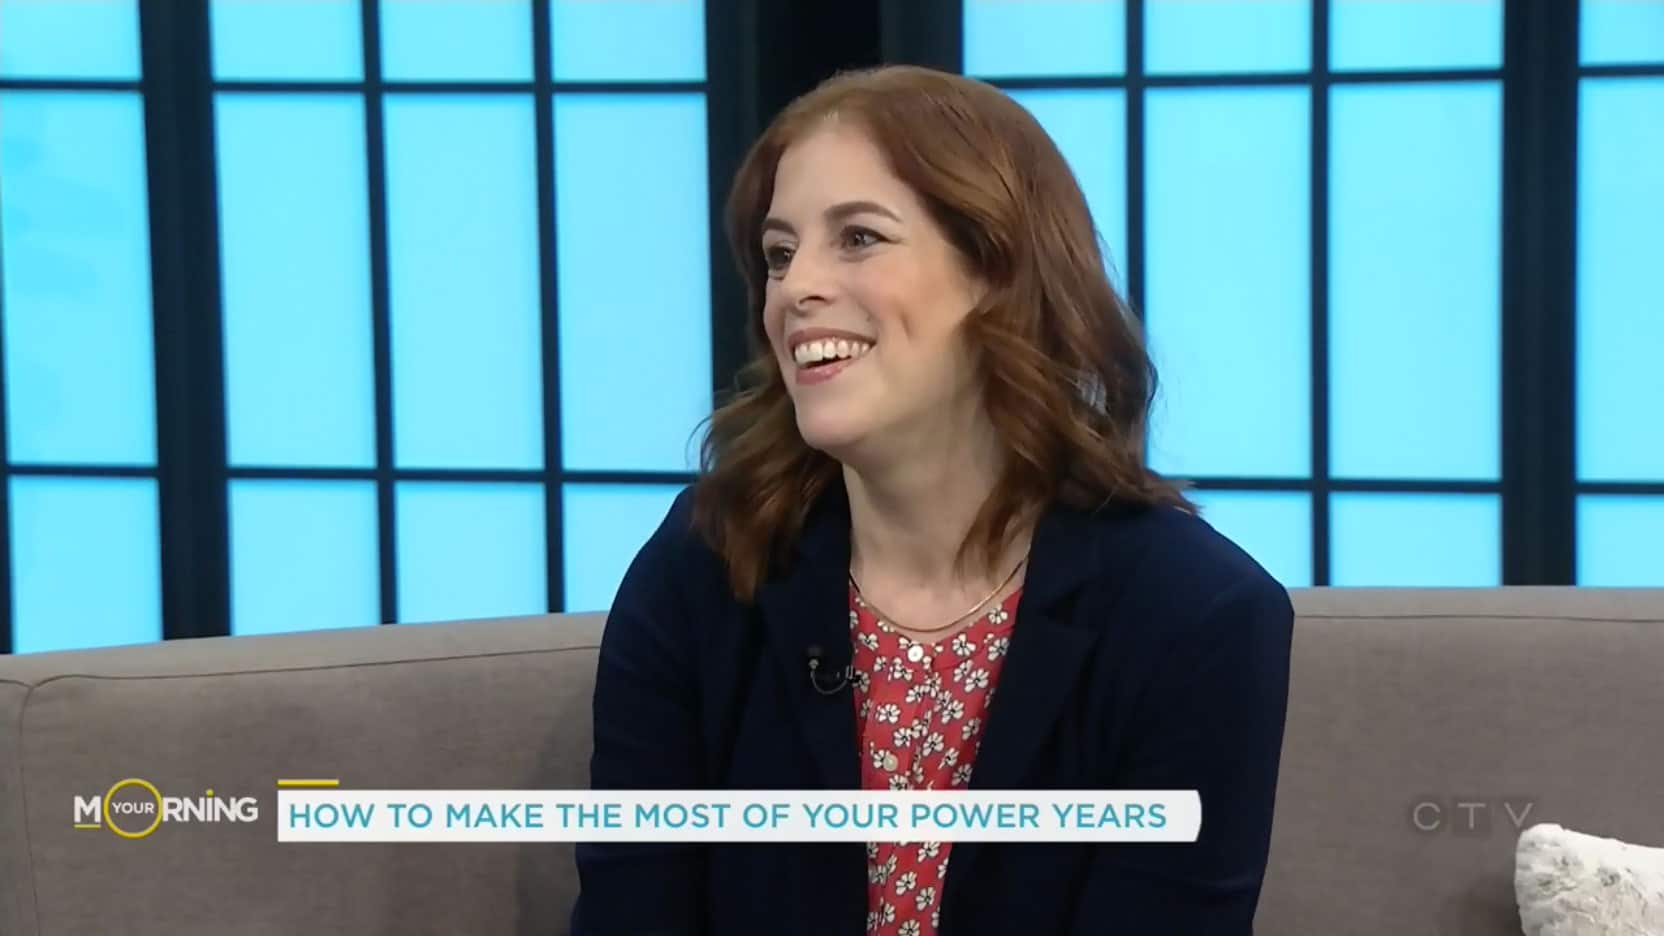 Sara Smeaton, Midlife Coach, on the CTV Morning news show.